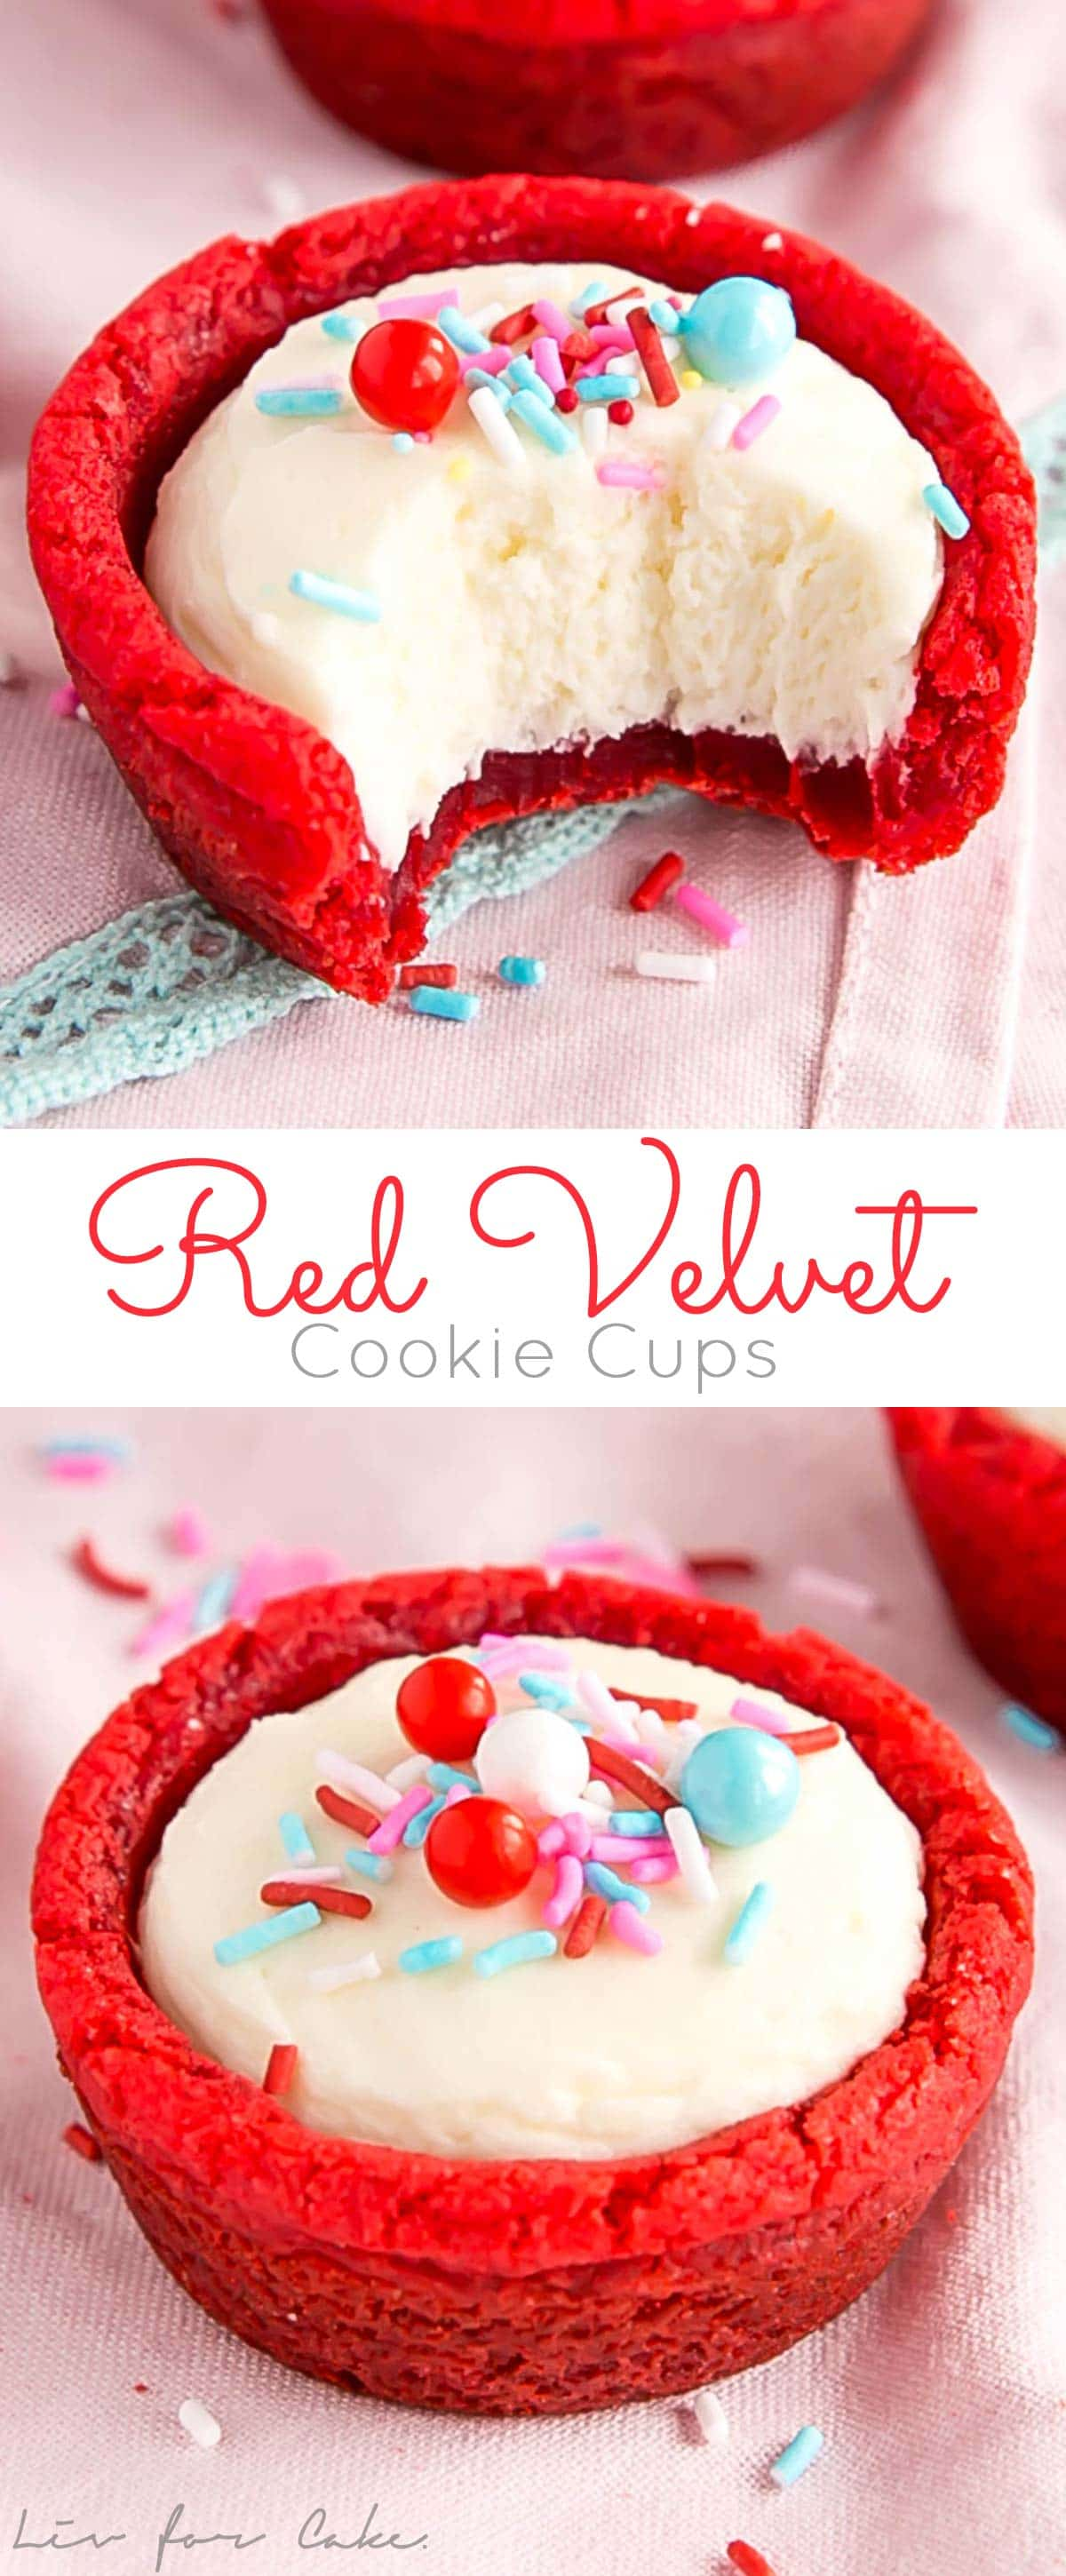 These Red Velvet Cookie Cups are a fun and easy treat to make for the one you love! Cinnamon spiced cookies with a fluffy cheesecake filling. | livforcake.com